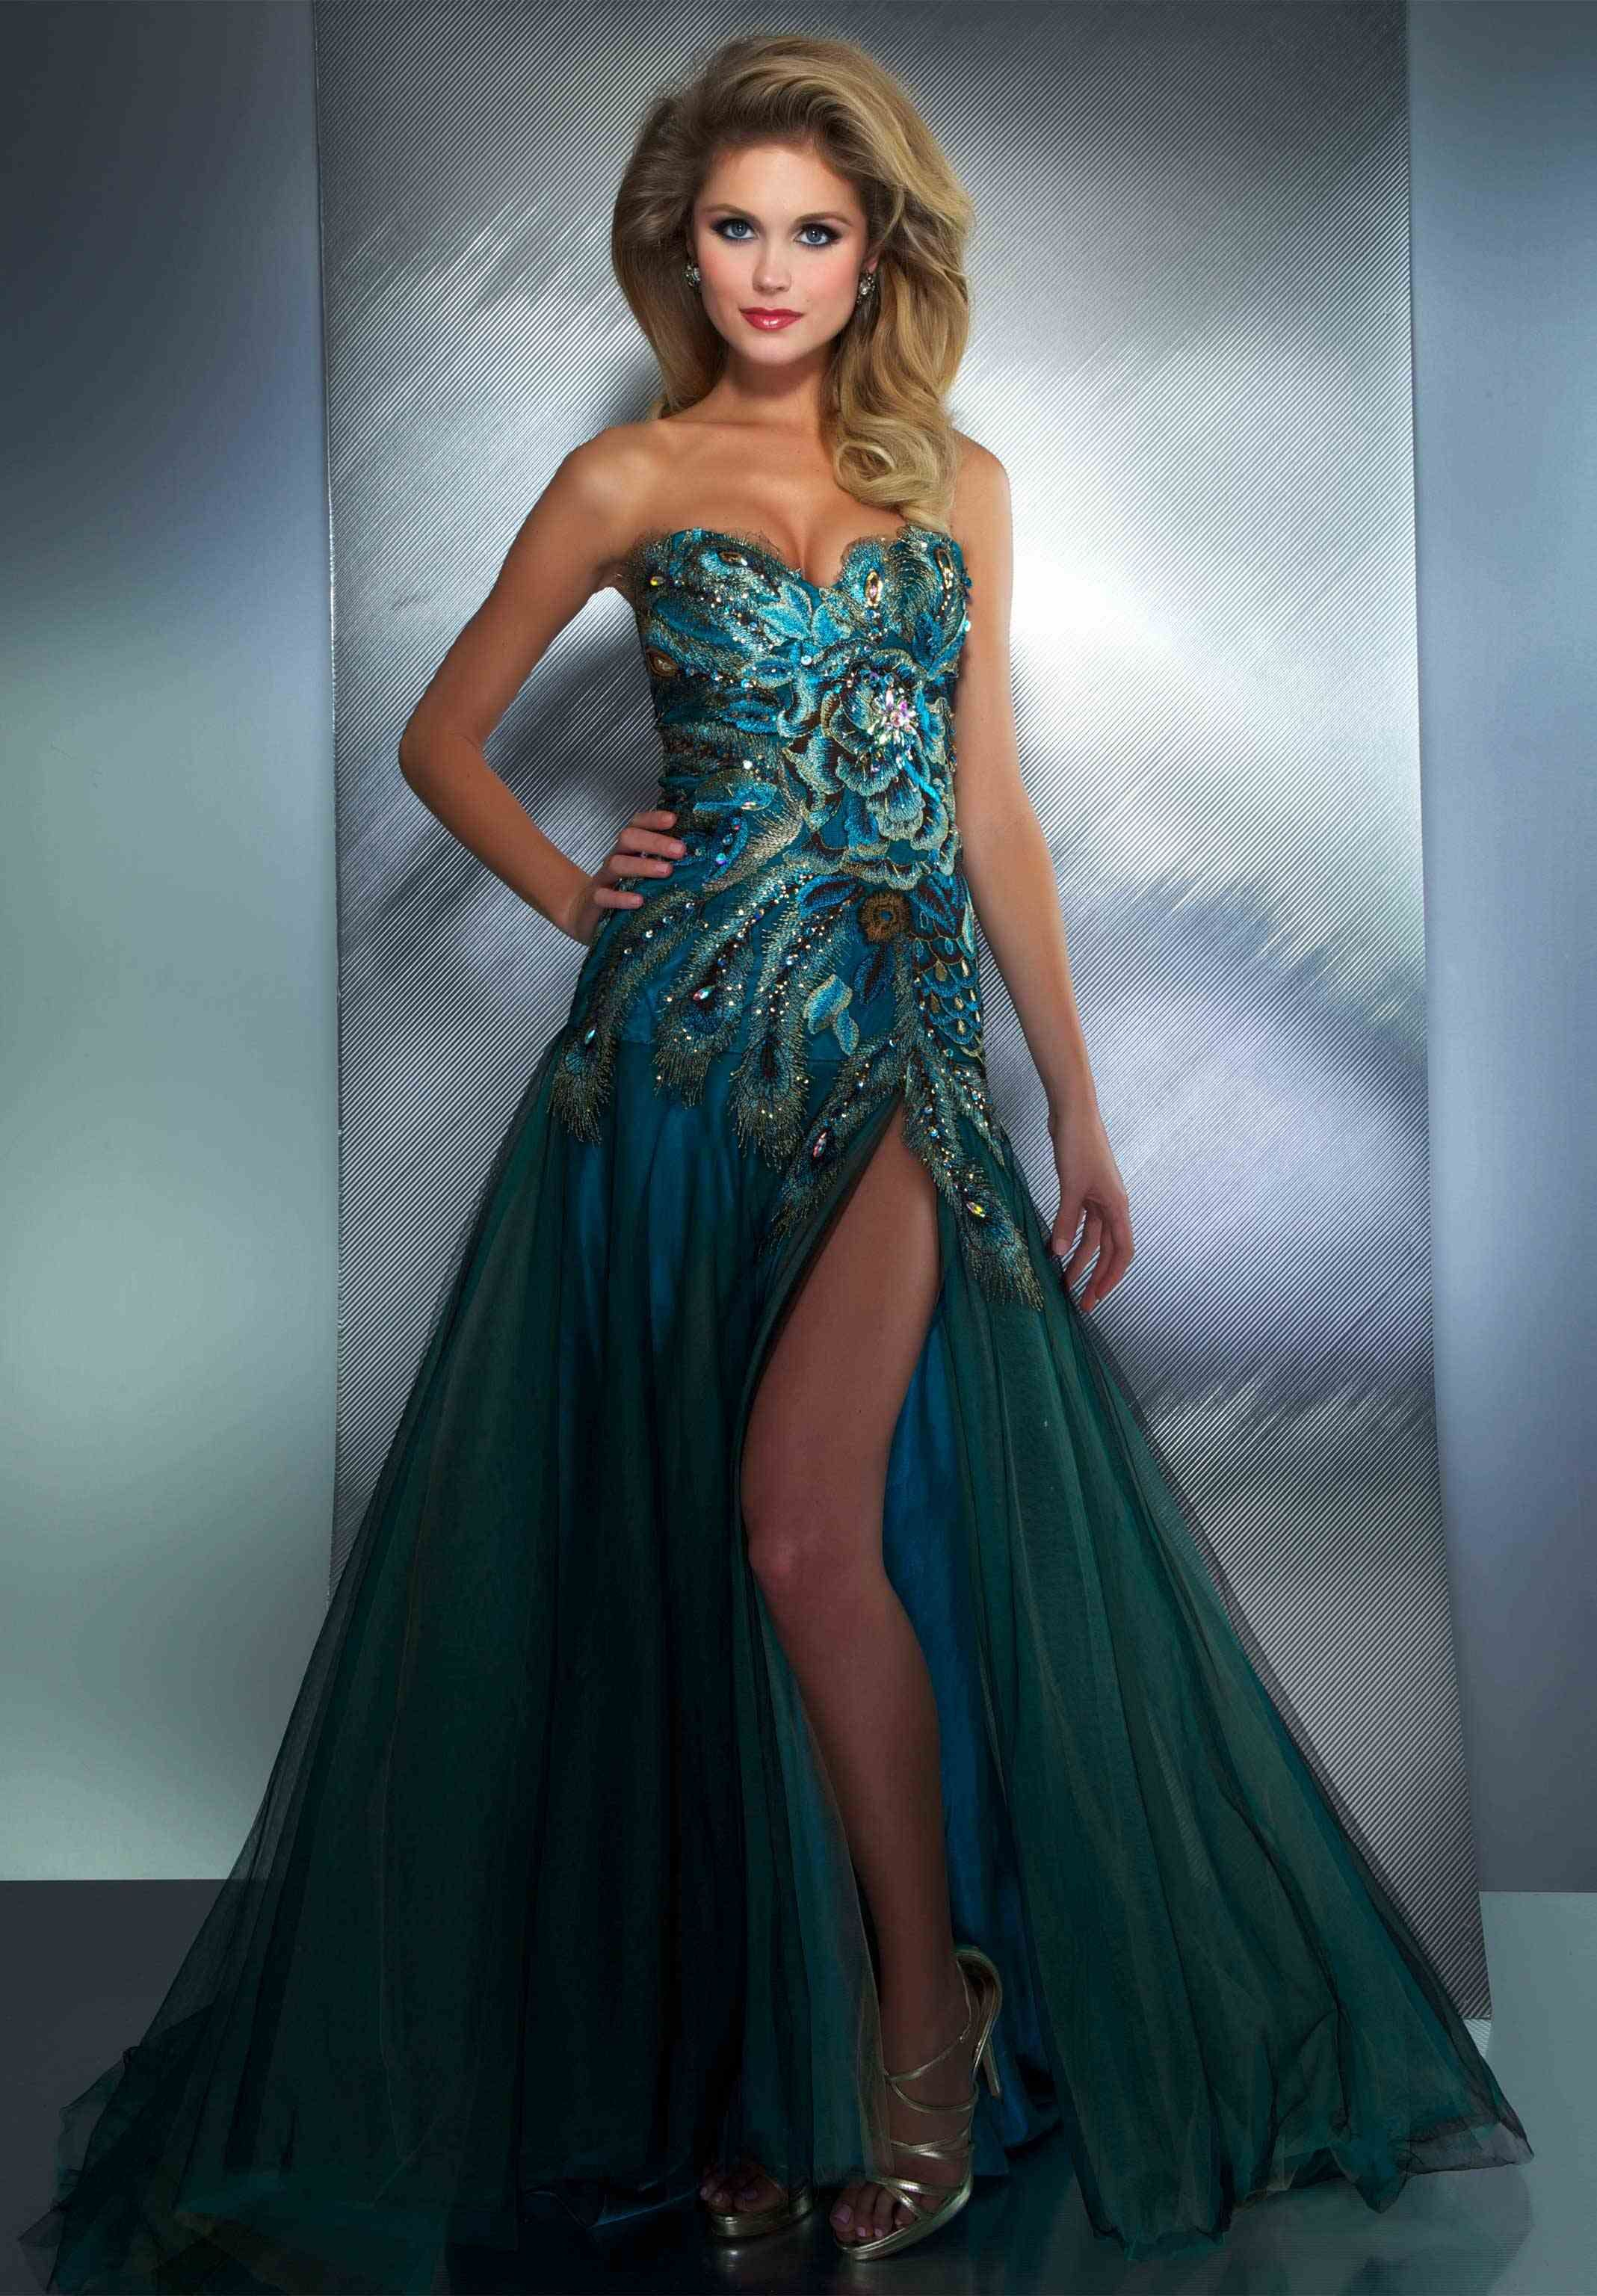 Green peacock prom dress | Best dress ideas | Pinterest | Green ...